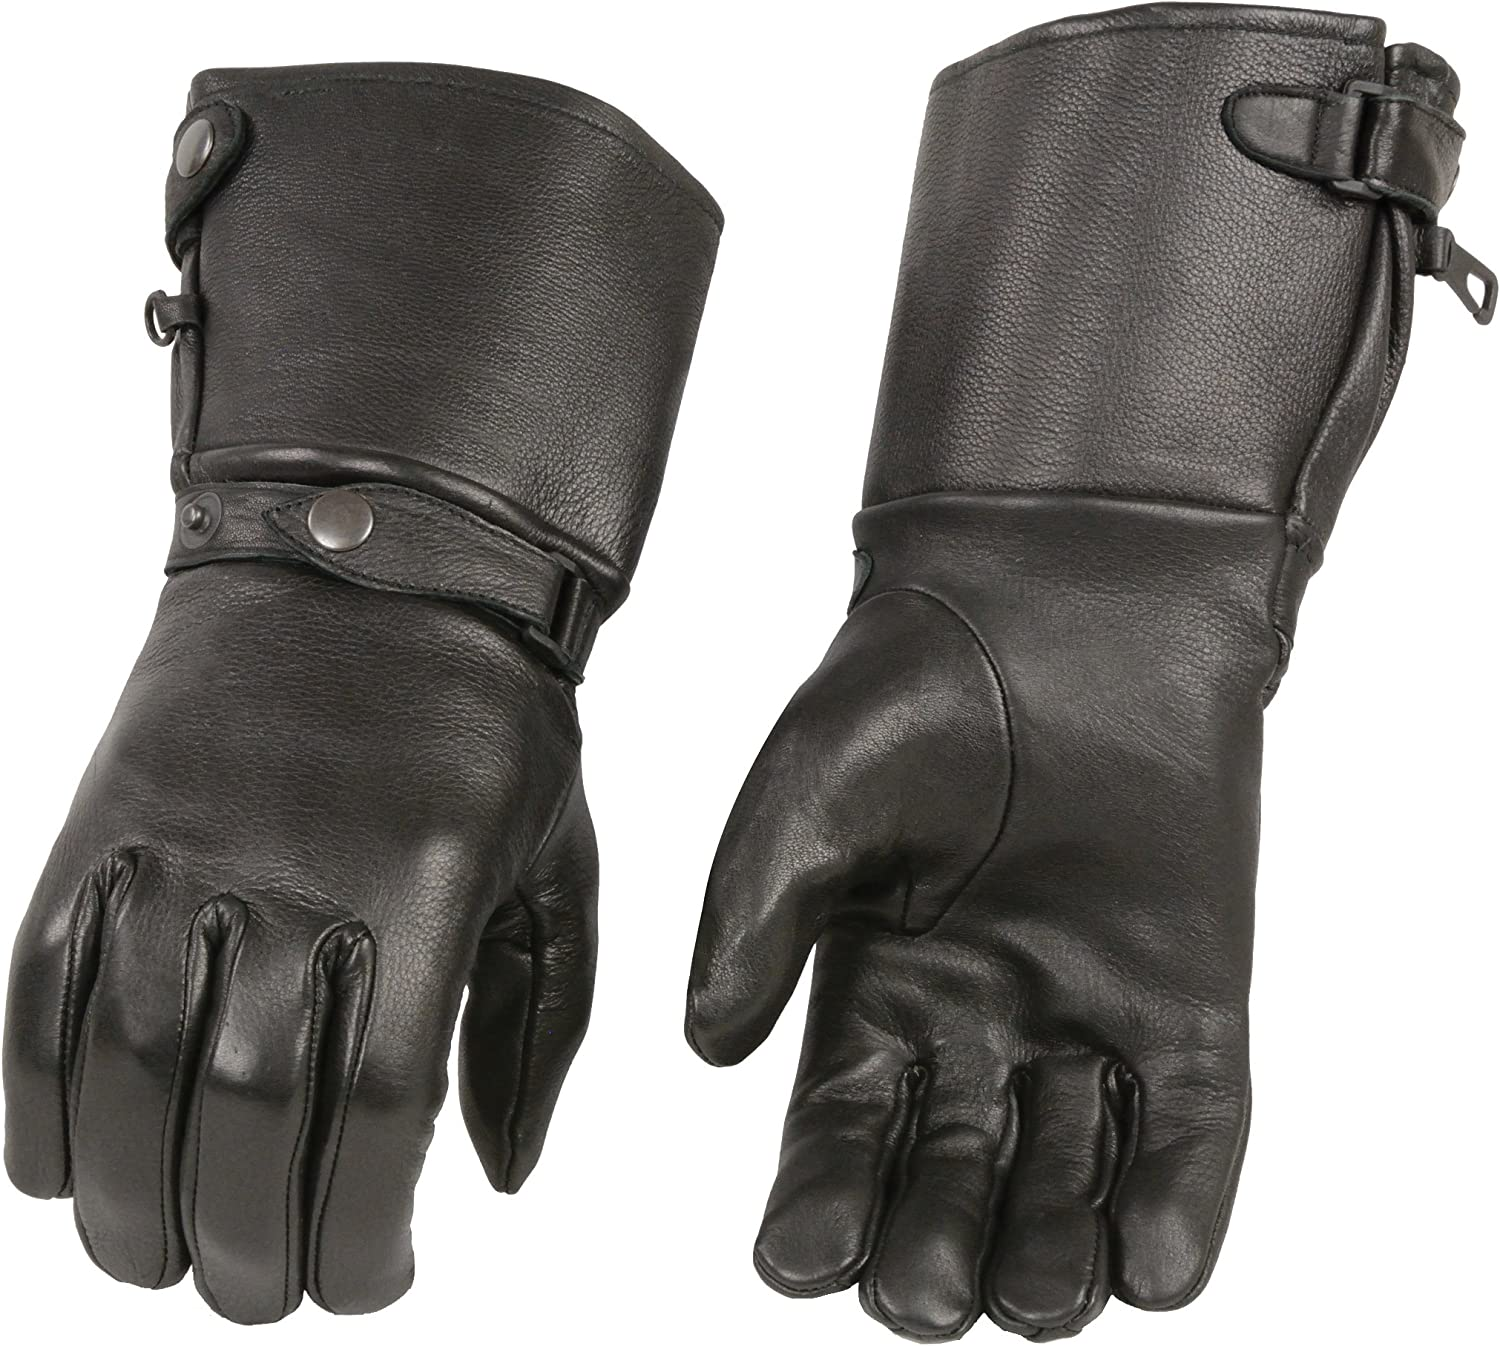 Men/'s USA Deerskin Leather Thermal Lined Gauntlet Glove w// Wrist Strap